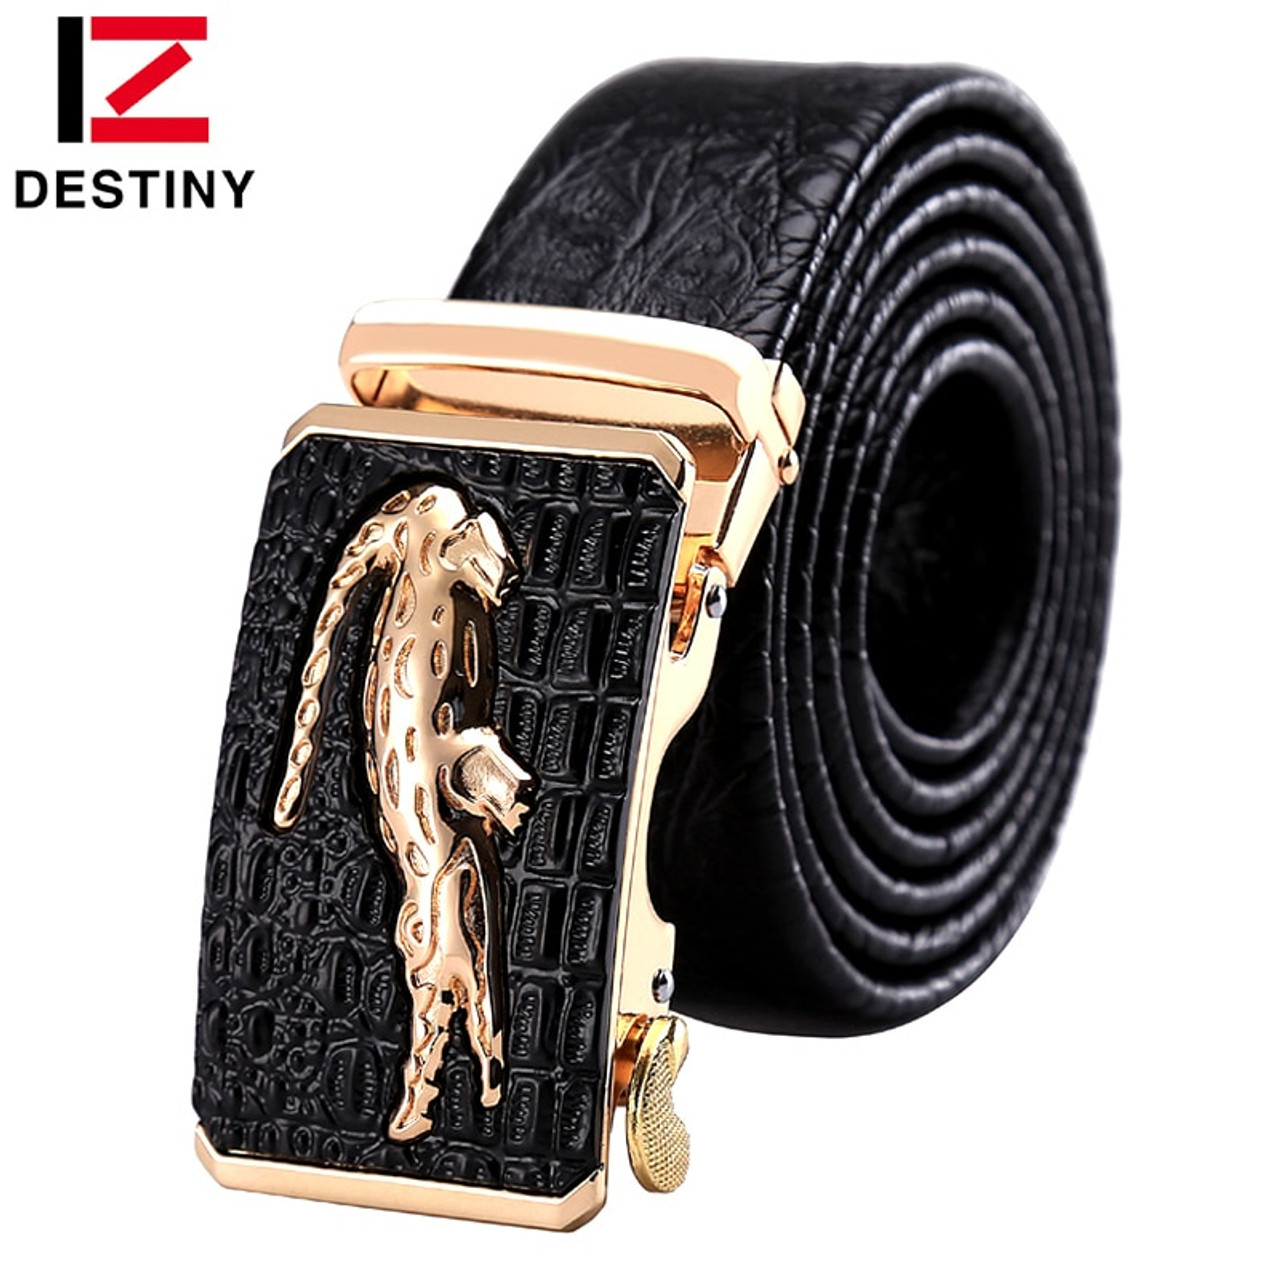 New Fashion Destiny Designer Automatic Buckle Without Belt Men Gold High Quality Metal Buckles For 3.5cm Automatic Belt Luxury Famous Brand Men's Belts